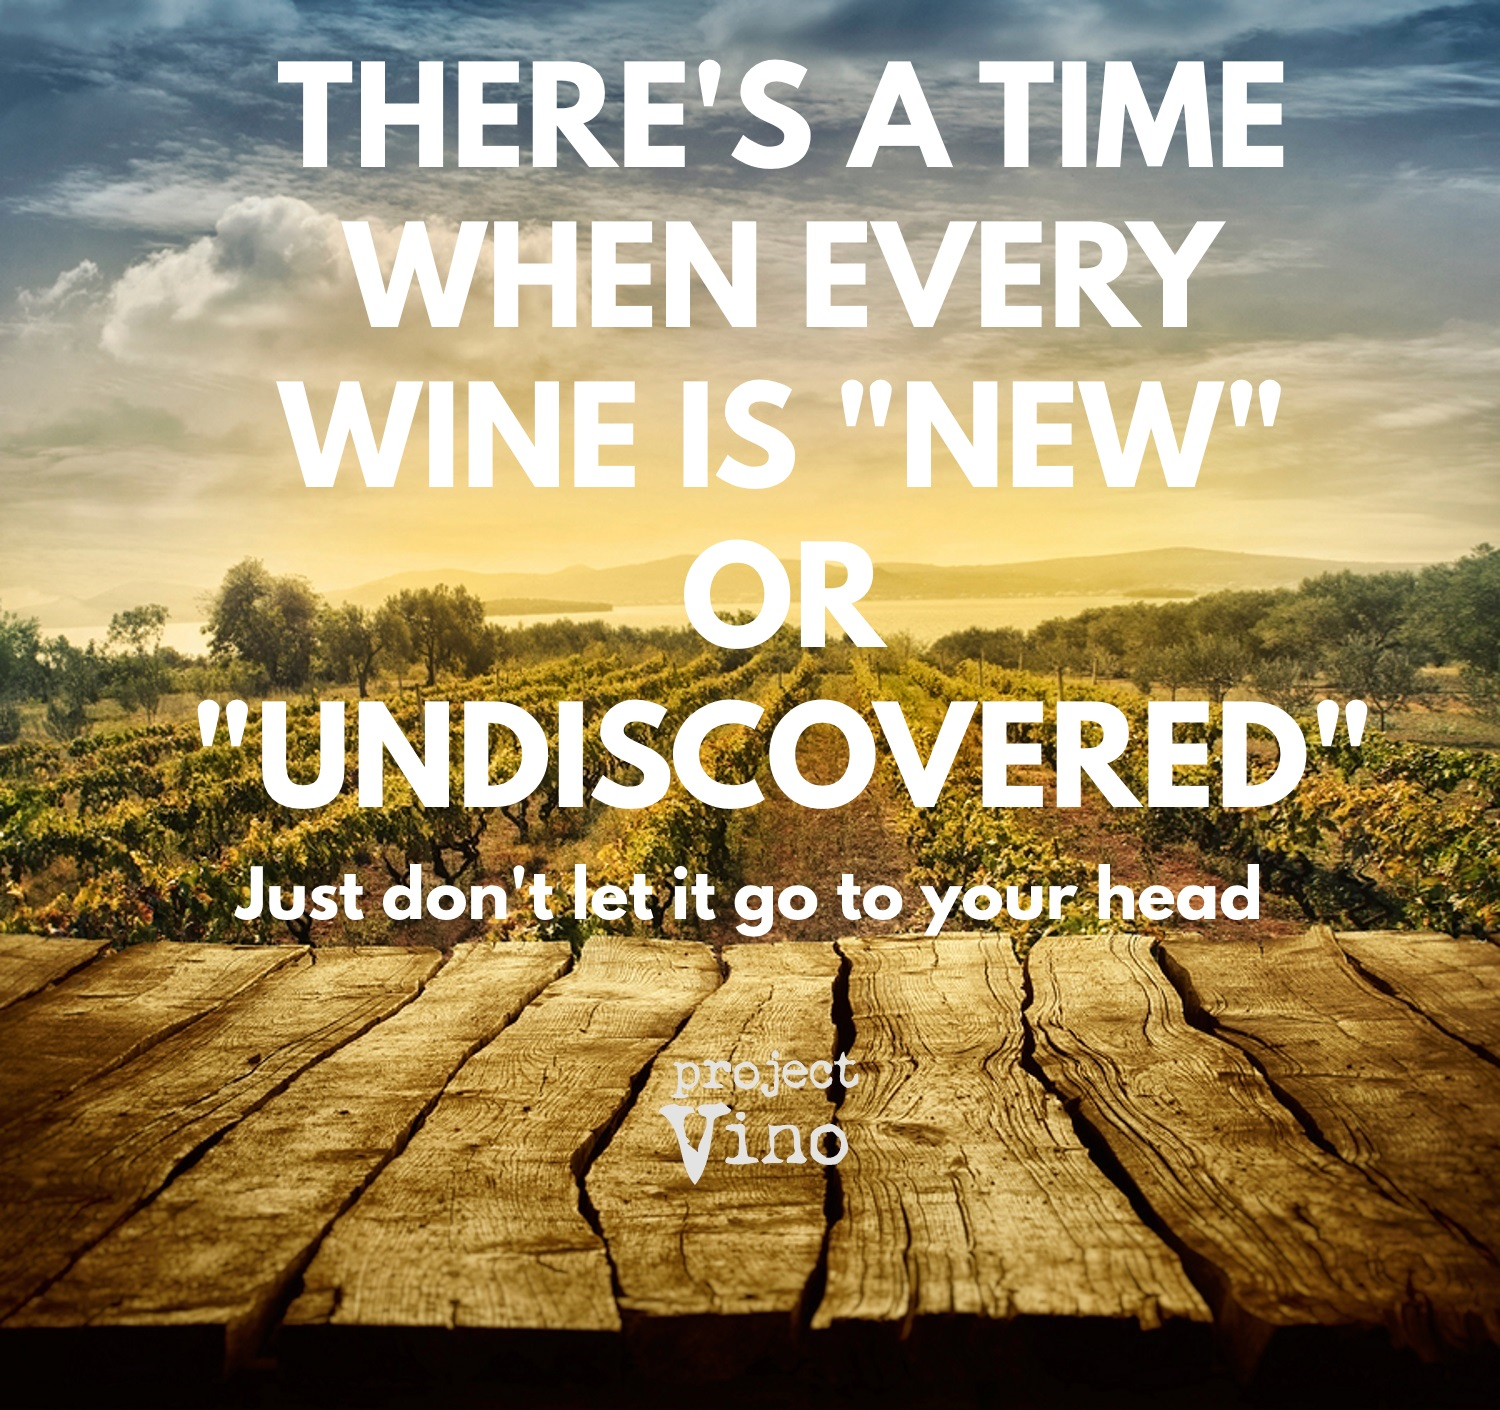 undiscovered & underrated wines